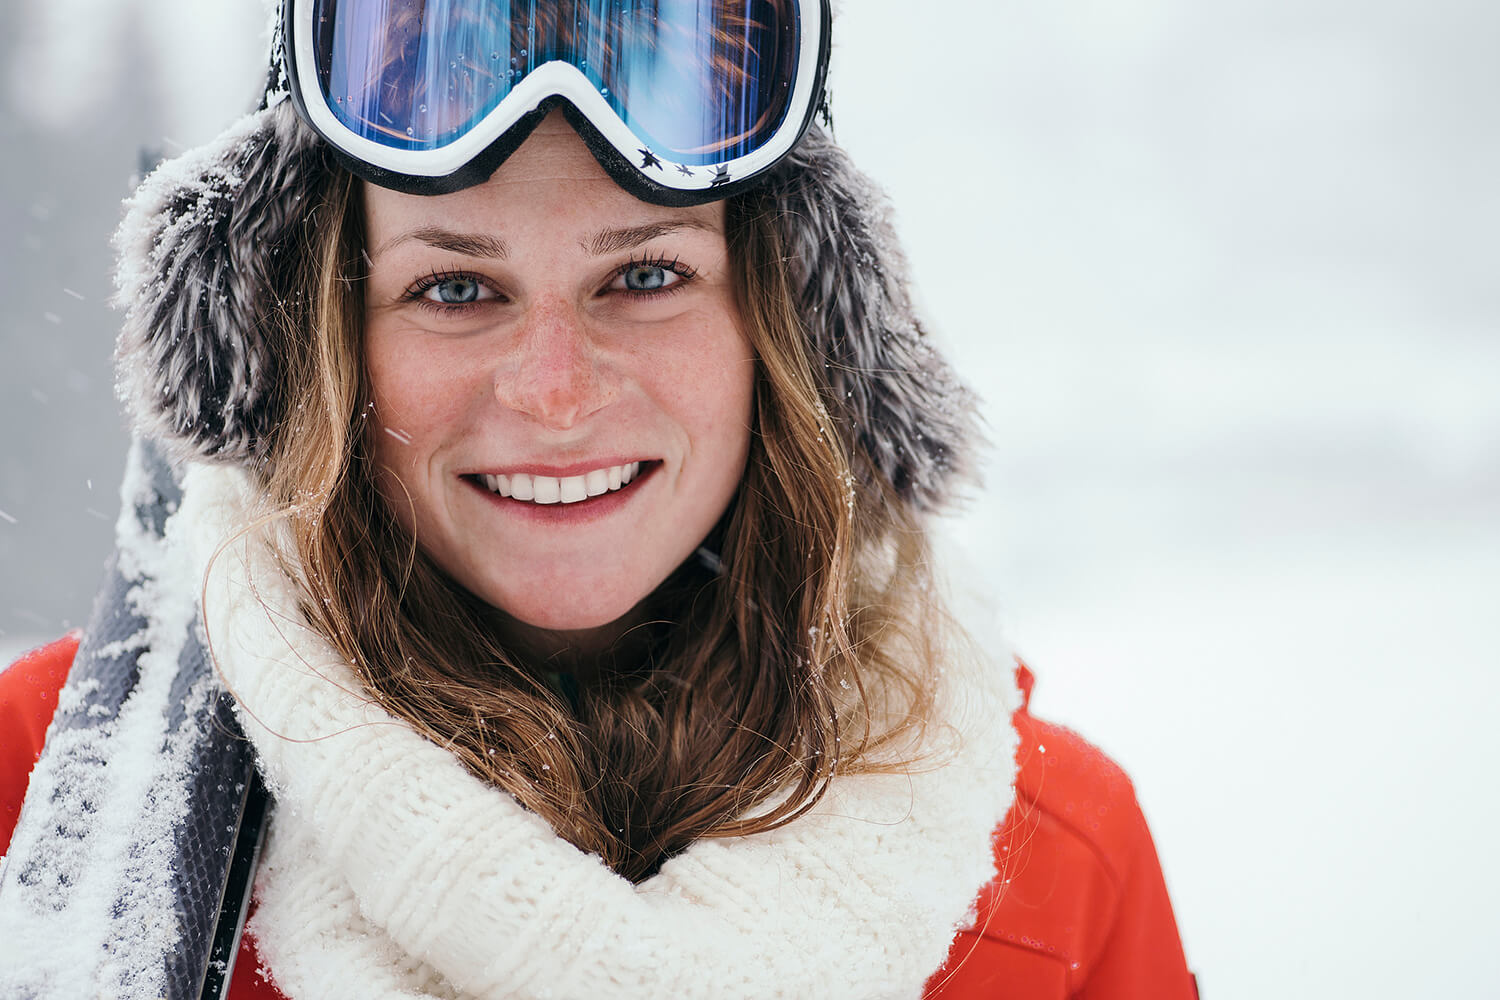 Portrait of a smiling woman in ski outfit and ski goggles